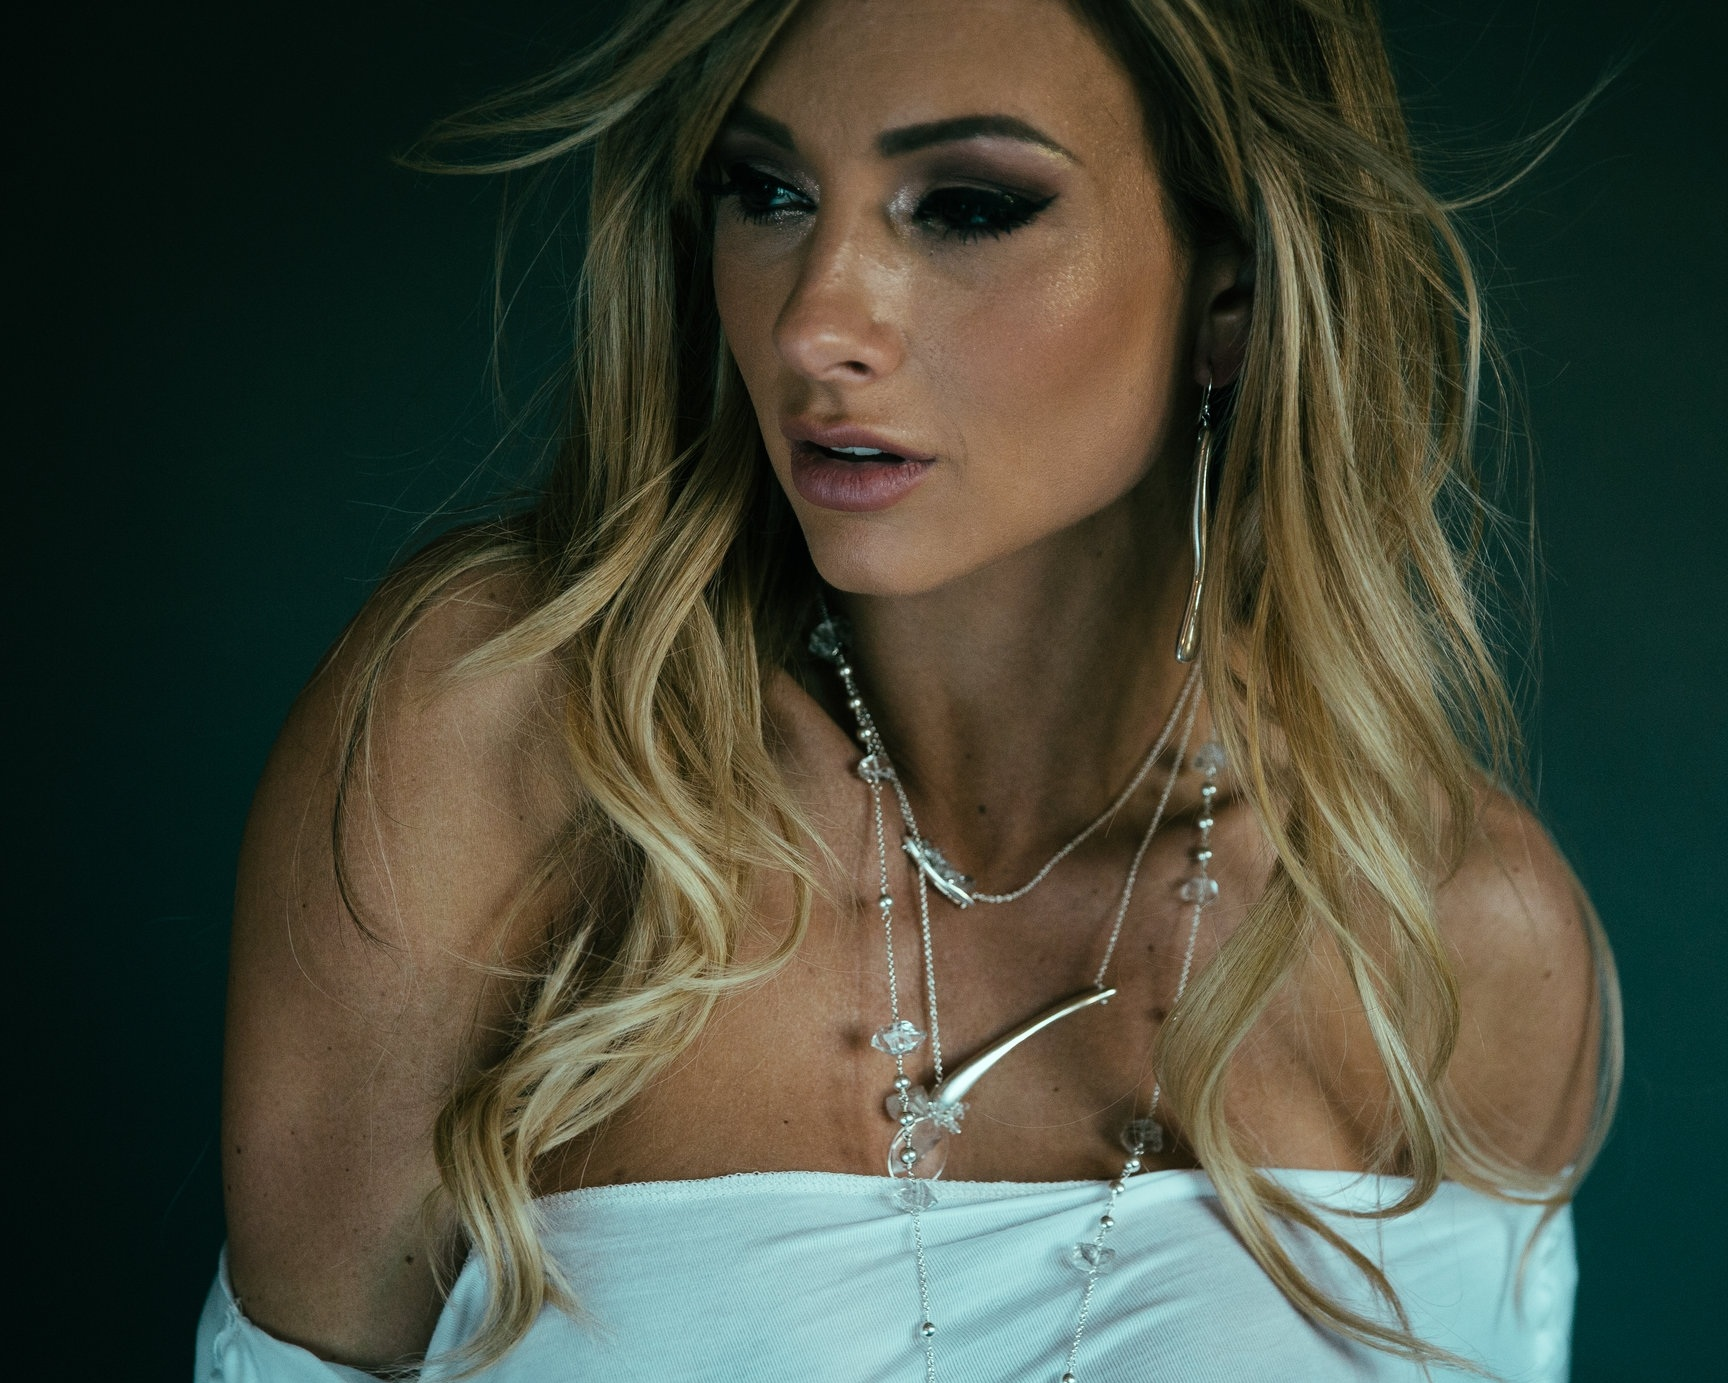 model wearing casted sterling silver bar necklace with herkimer diamonds